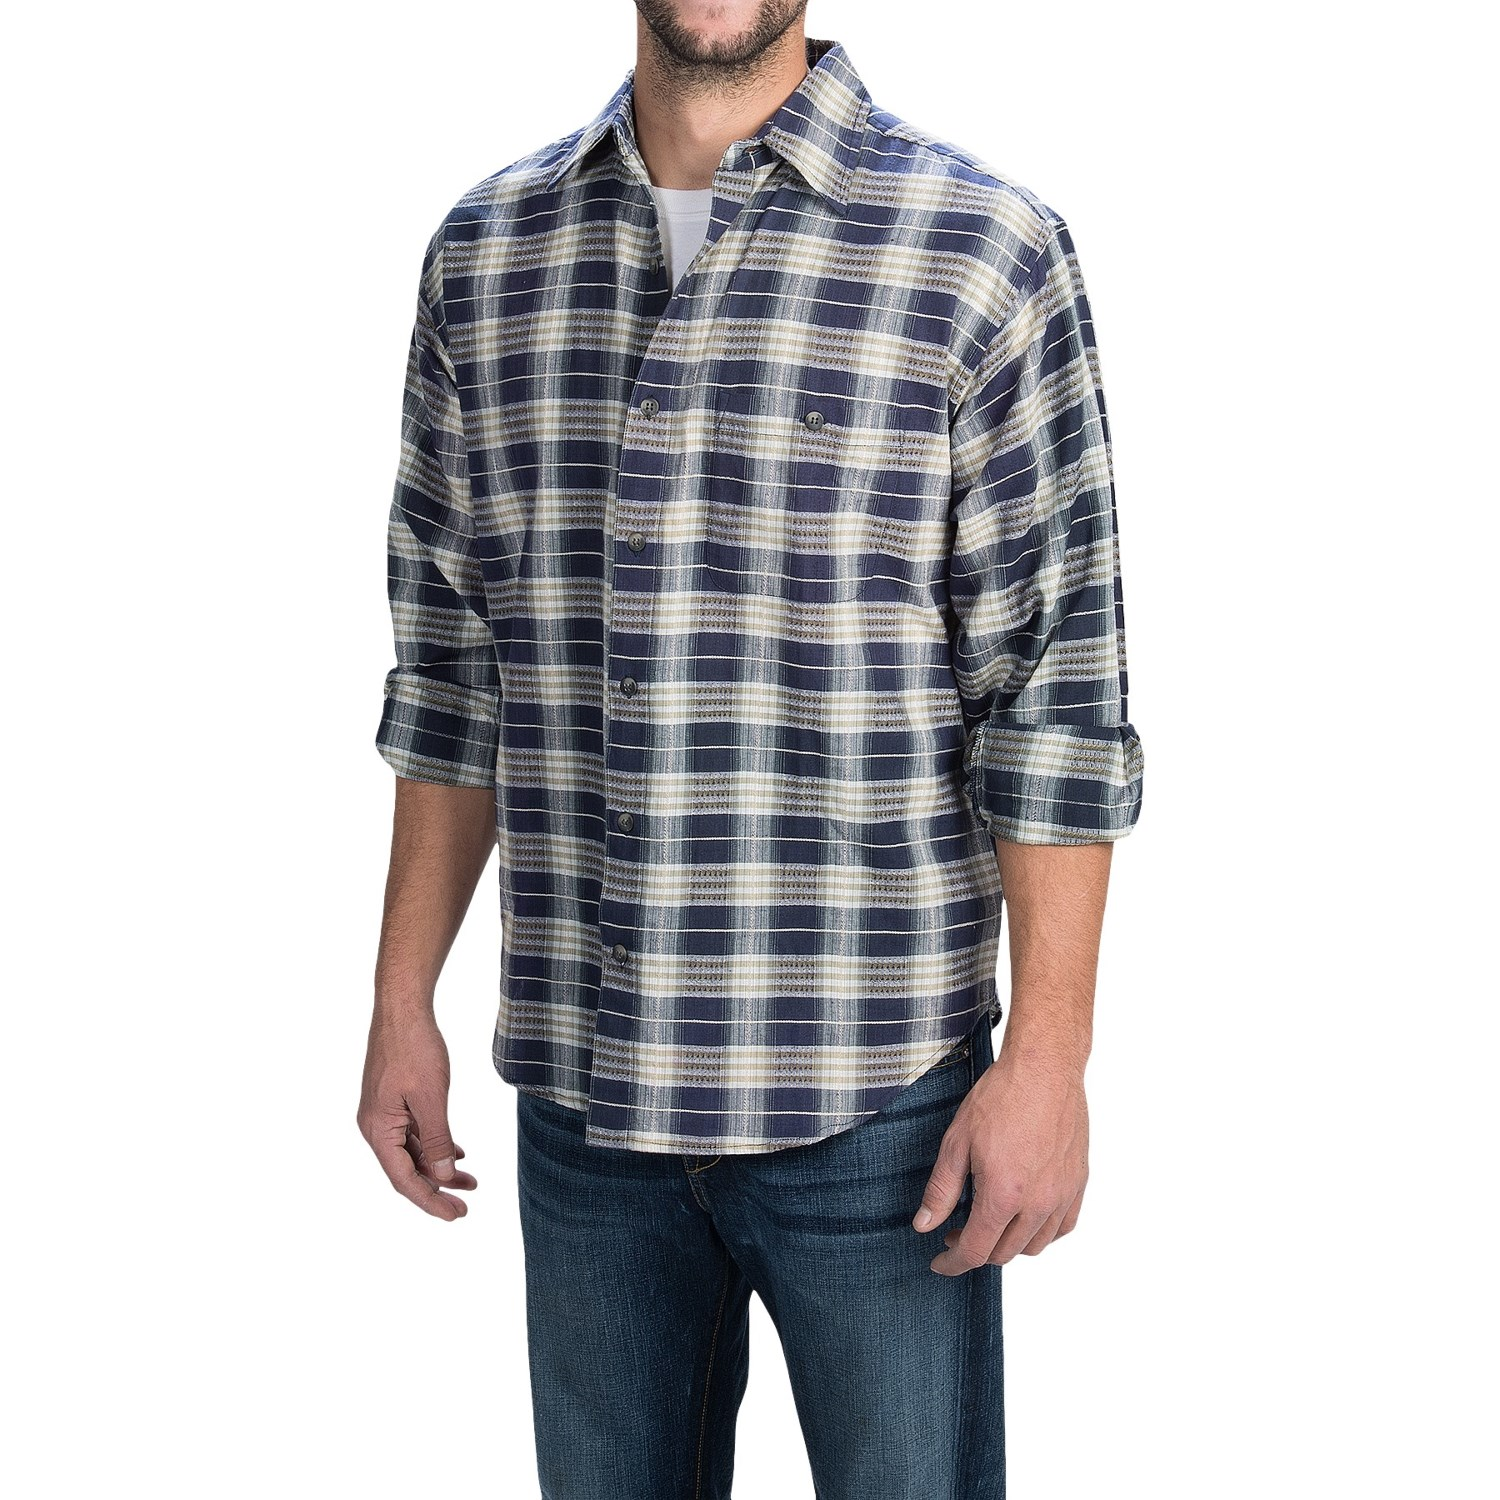 europegamexma.gq has a complete assortment of Men's Plaid Long Sleeve Shirts, in stock and ready to ship! Orders over $99 ship free!